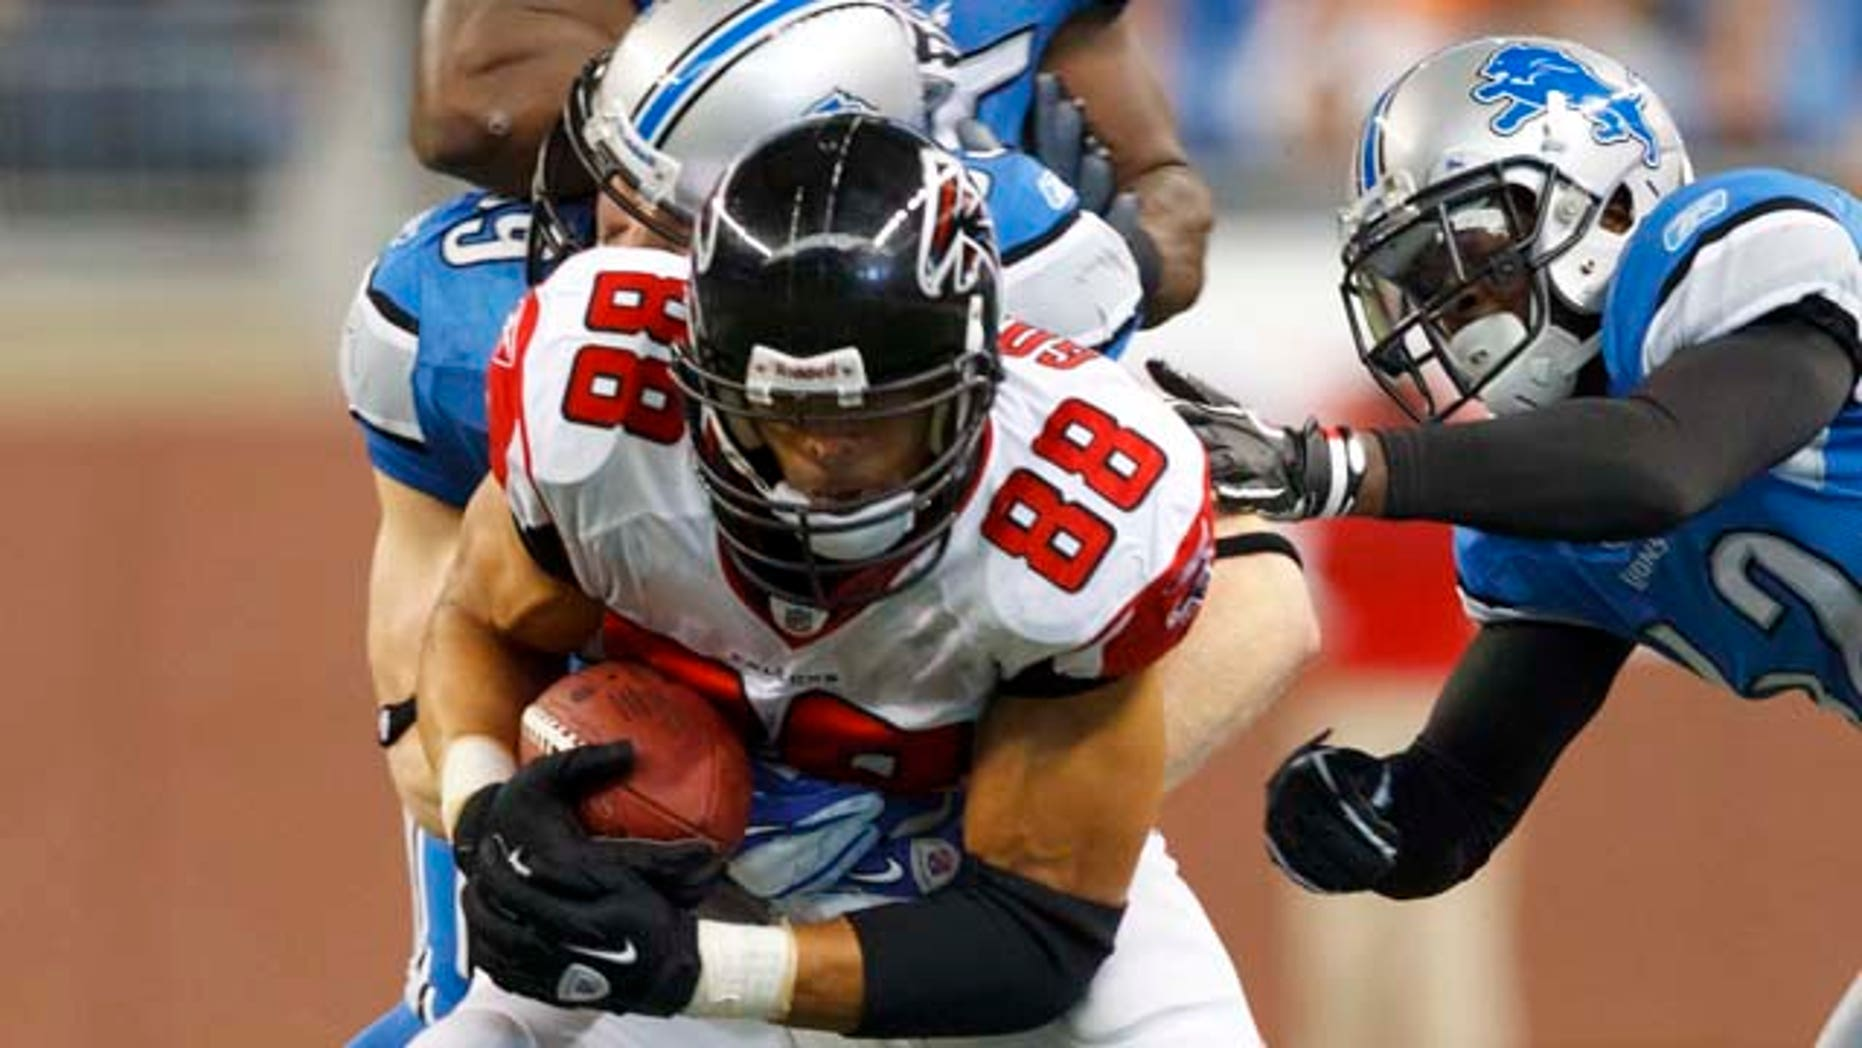 Atlanta Falcons tight end Tony Gonzalez (88) is tackled by Detroit Lions outside linebacker Bobby Carpenter (59), Amari Spievey, right, and linebacker Stephen Tulloch (55) in the third quarter of an NFL football game in Detroit, Sunday, Oct. 23, 2011. Gonzalez had five receptions for 62 yards to pass Marvin Harrison for second place on the NFL career receptions list. (AP Photo/Rick Osentoski)